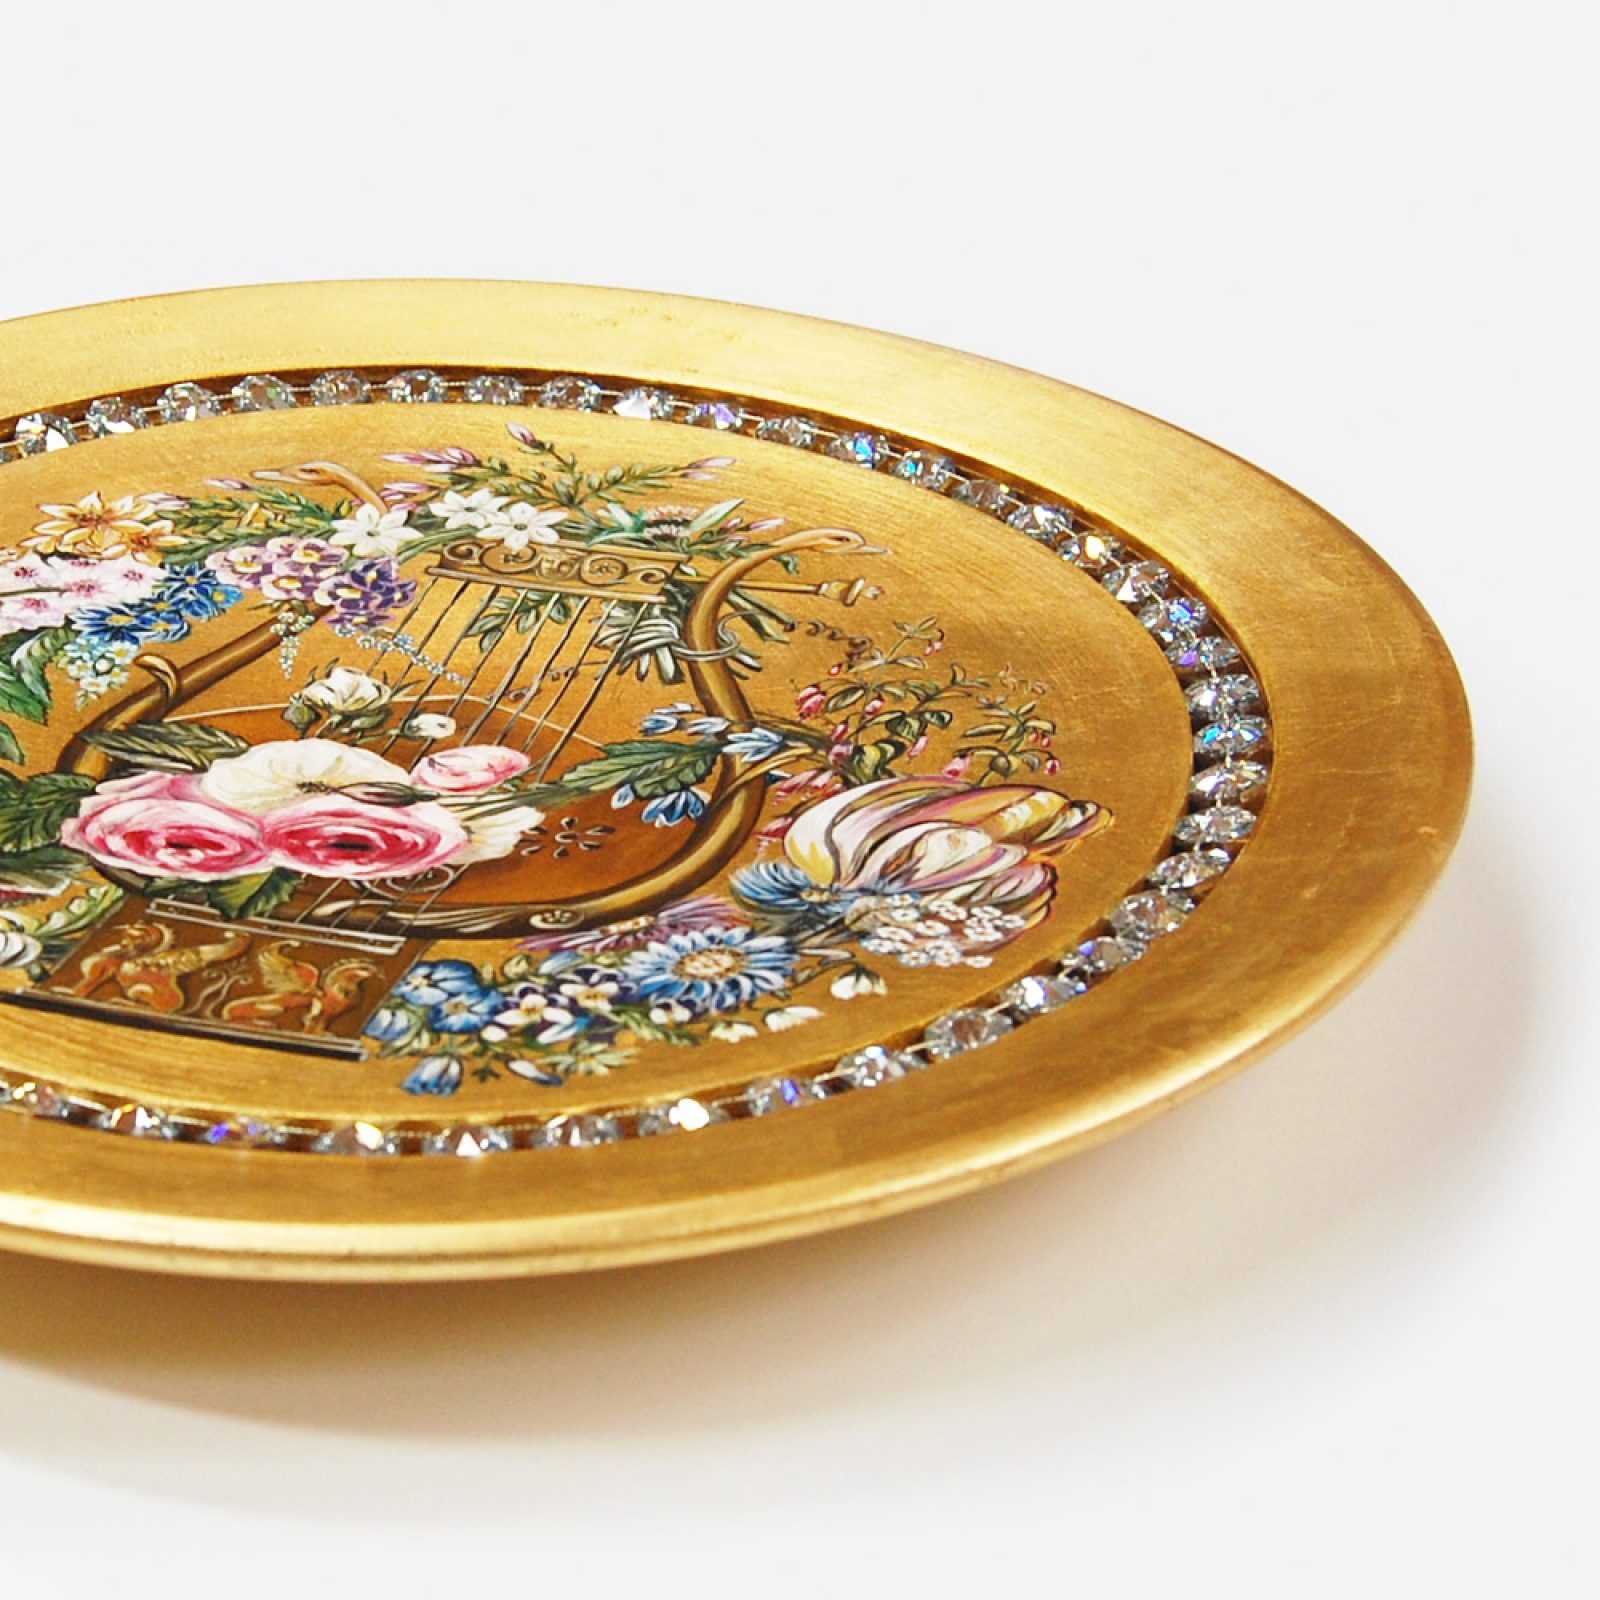 Kalomira - Hand painted and gilded with 24-karat gold   Natalis Luxus